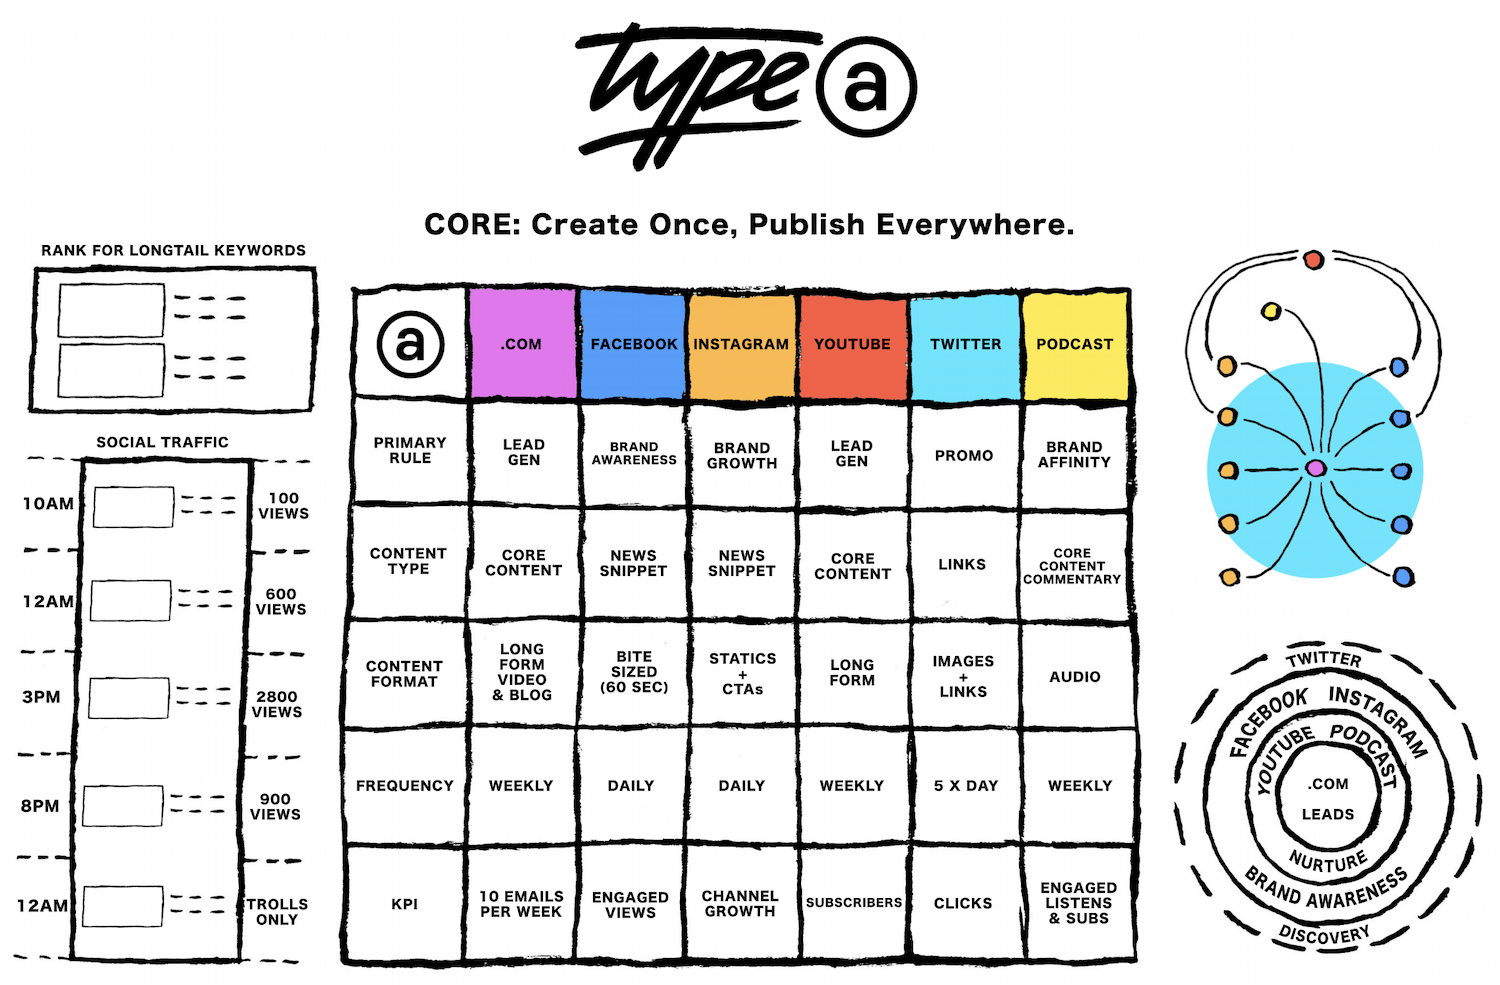 Weekly Wisdom with Ross Tavendale: COPE - Create Once, Publish Everywhere. Image 0